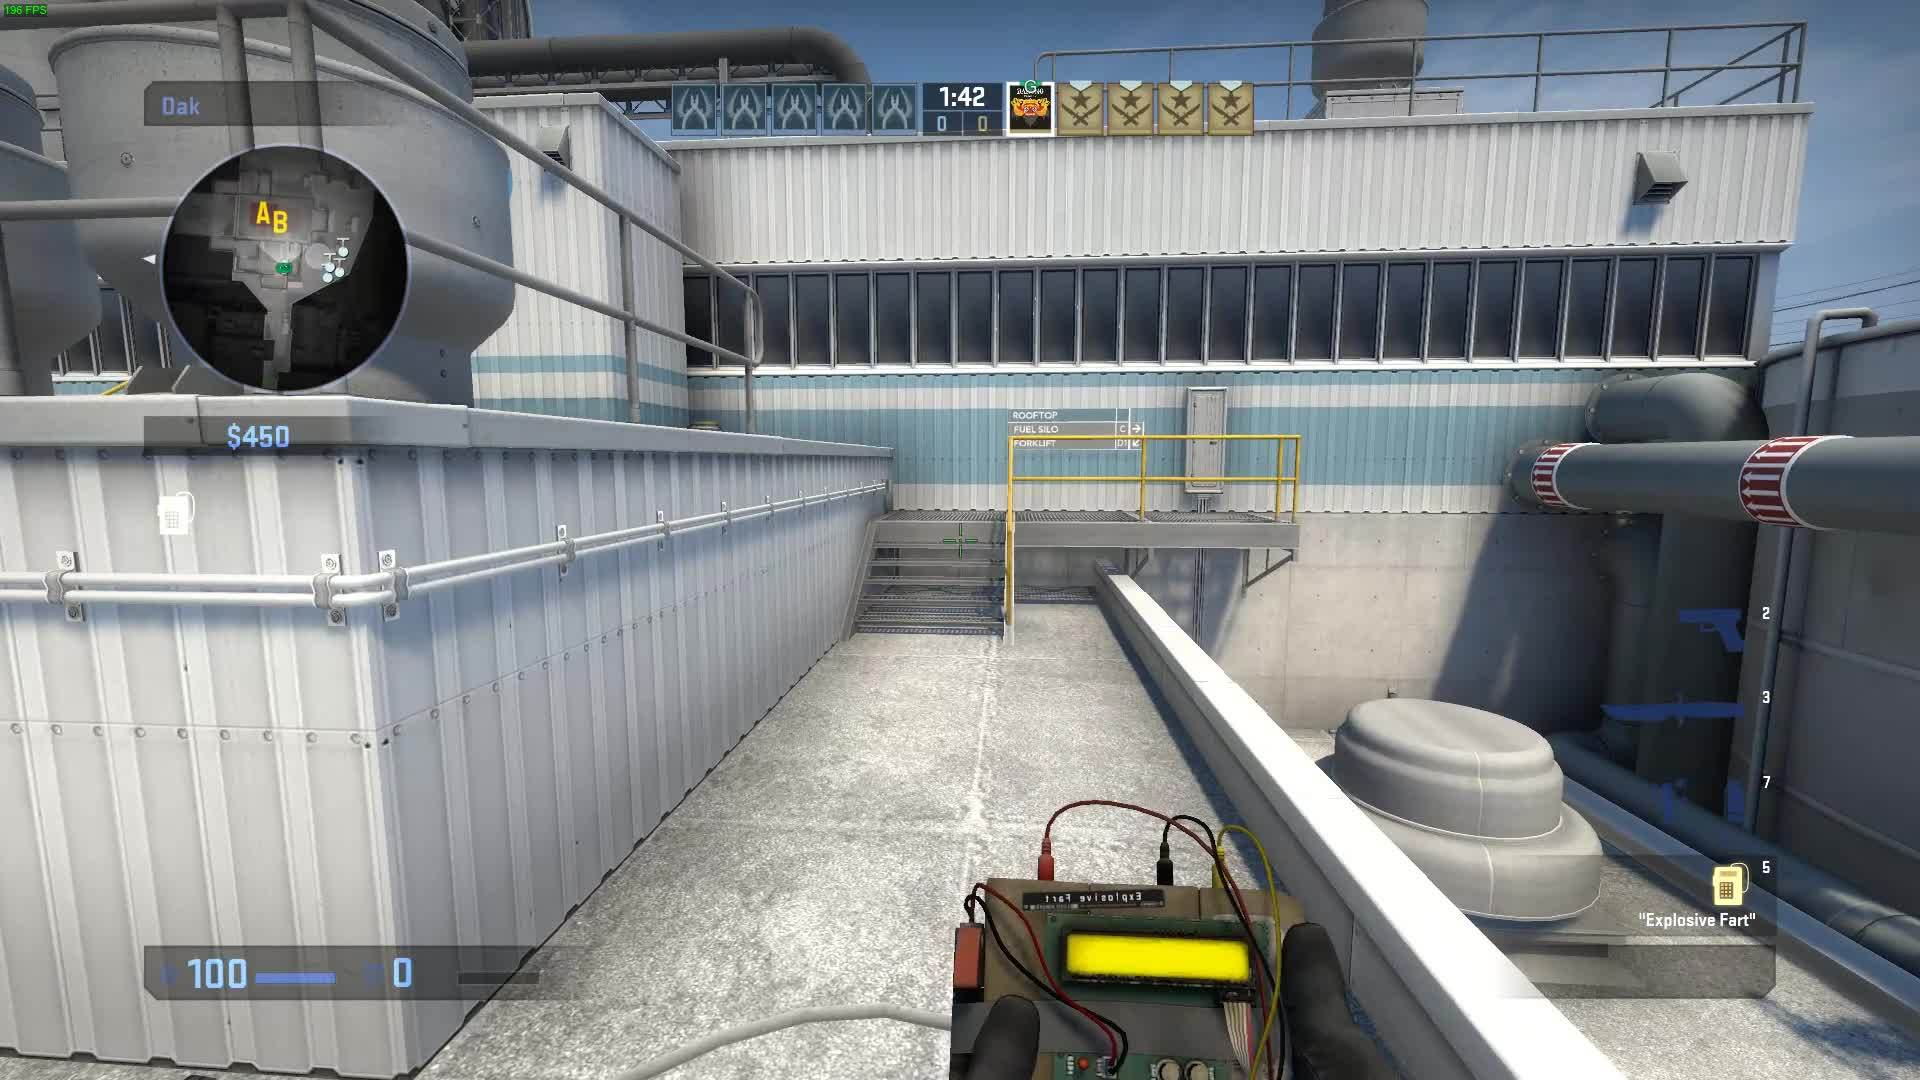 de_nuke, gameplay, globaloffensive, https://www.reddit.com/r/GlobalOffensive/comments/4gadzx/i_guess_gabe_doesnt_want_me_to_awp/d2glv94 GIFs